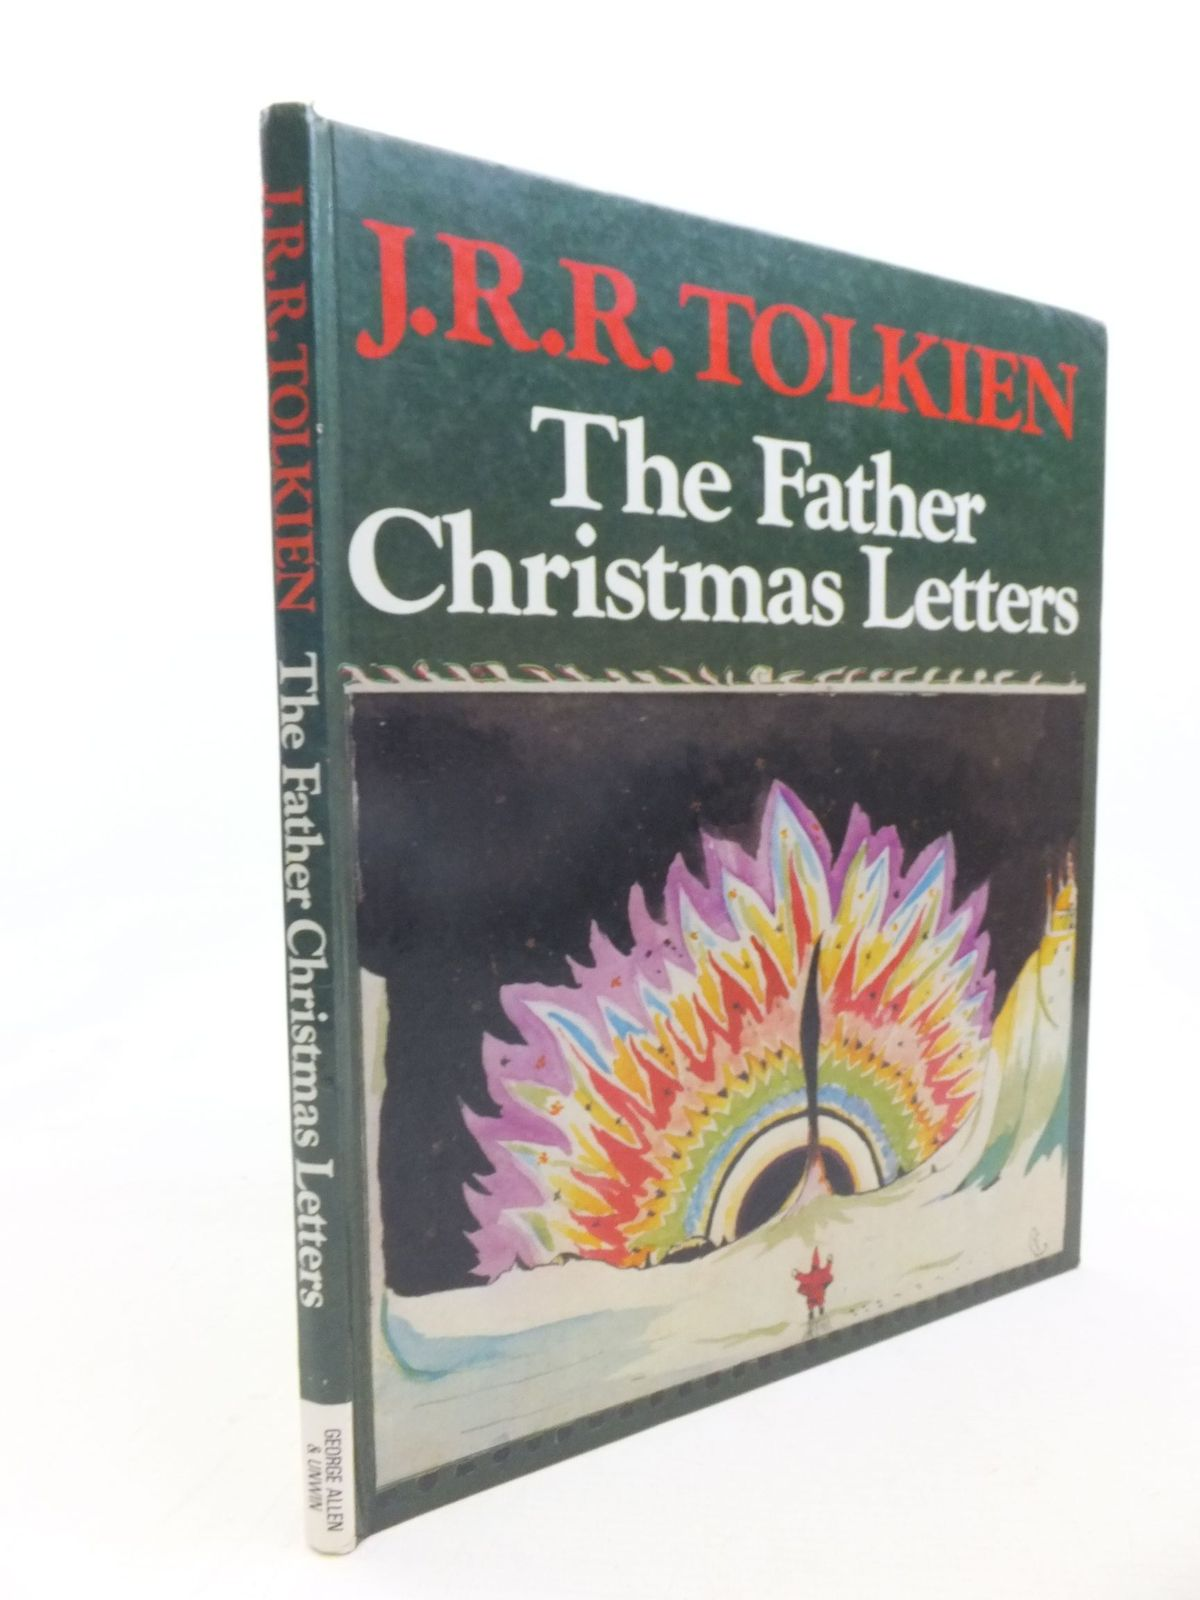 The father christmas letters written by tolkien jrr stock code the father christmas letters written by tolkien jrr stock code 2116307 stella roses books spiritdancerdesigns Choice Image